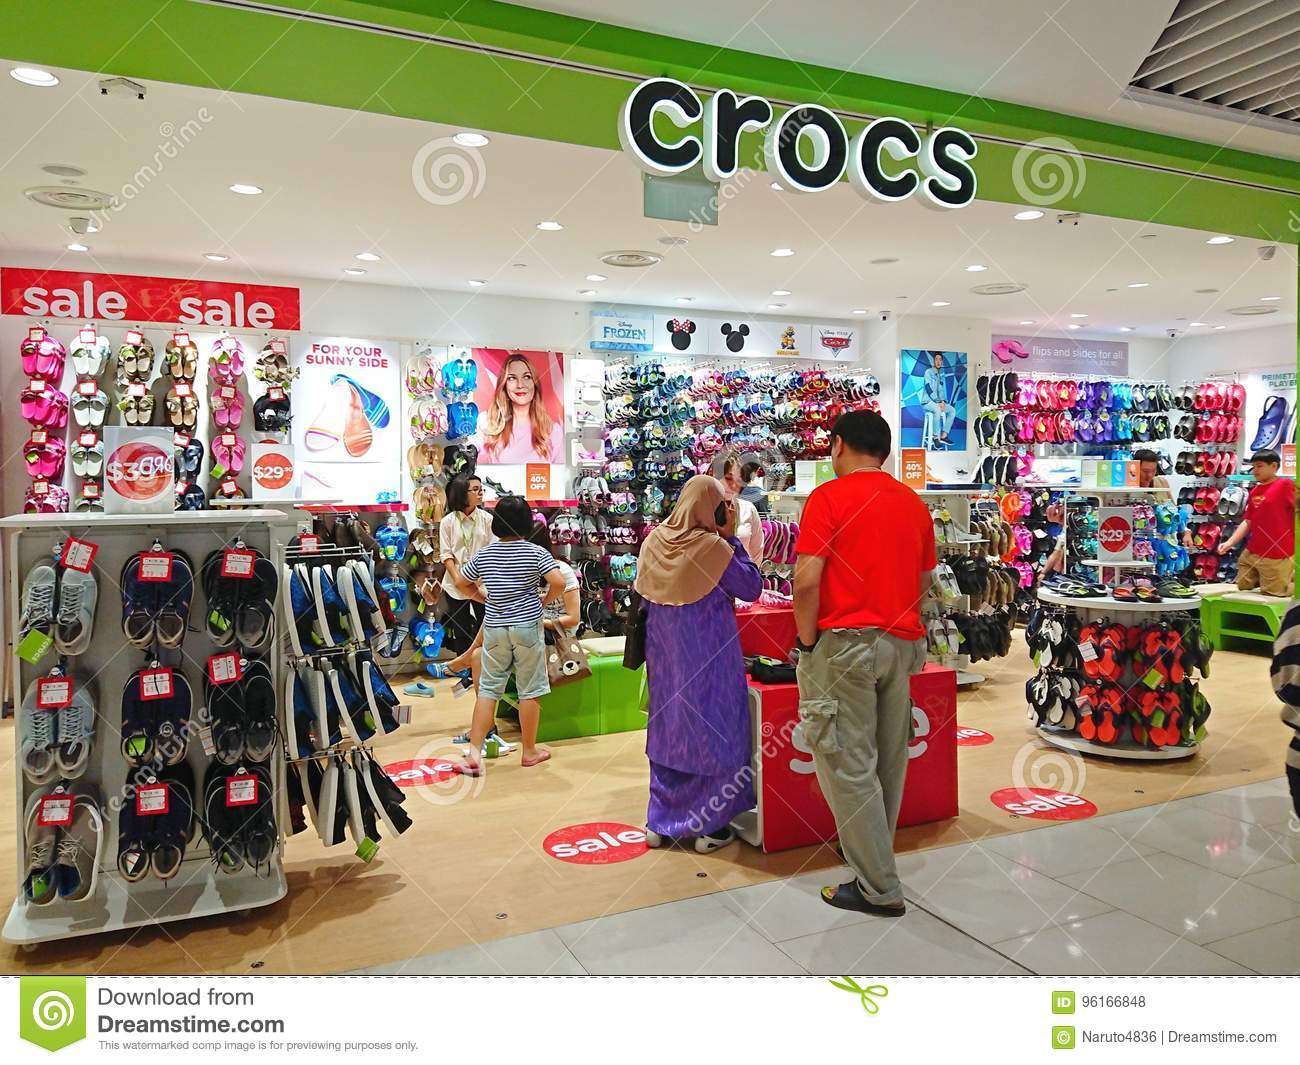 6a0ffacee 1 of the many Crocs retail store in Singapore . Shoppers checking out items  that are on display .